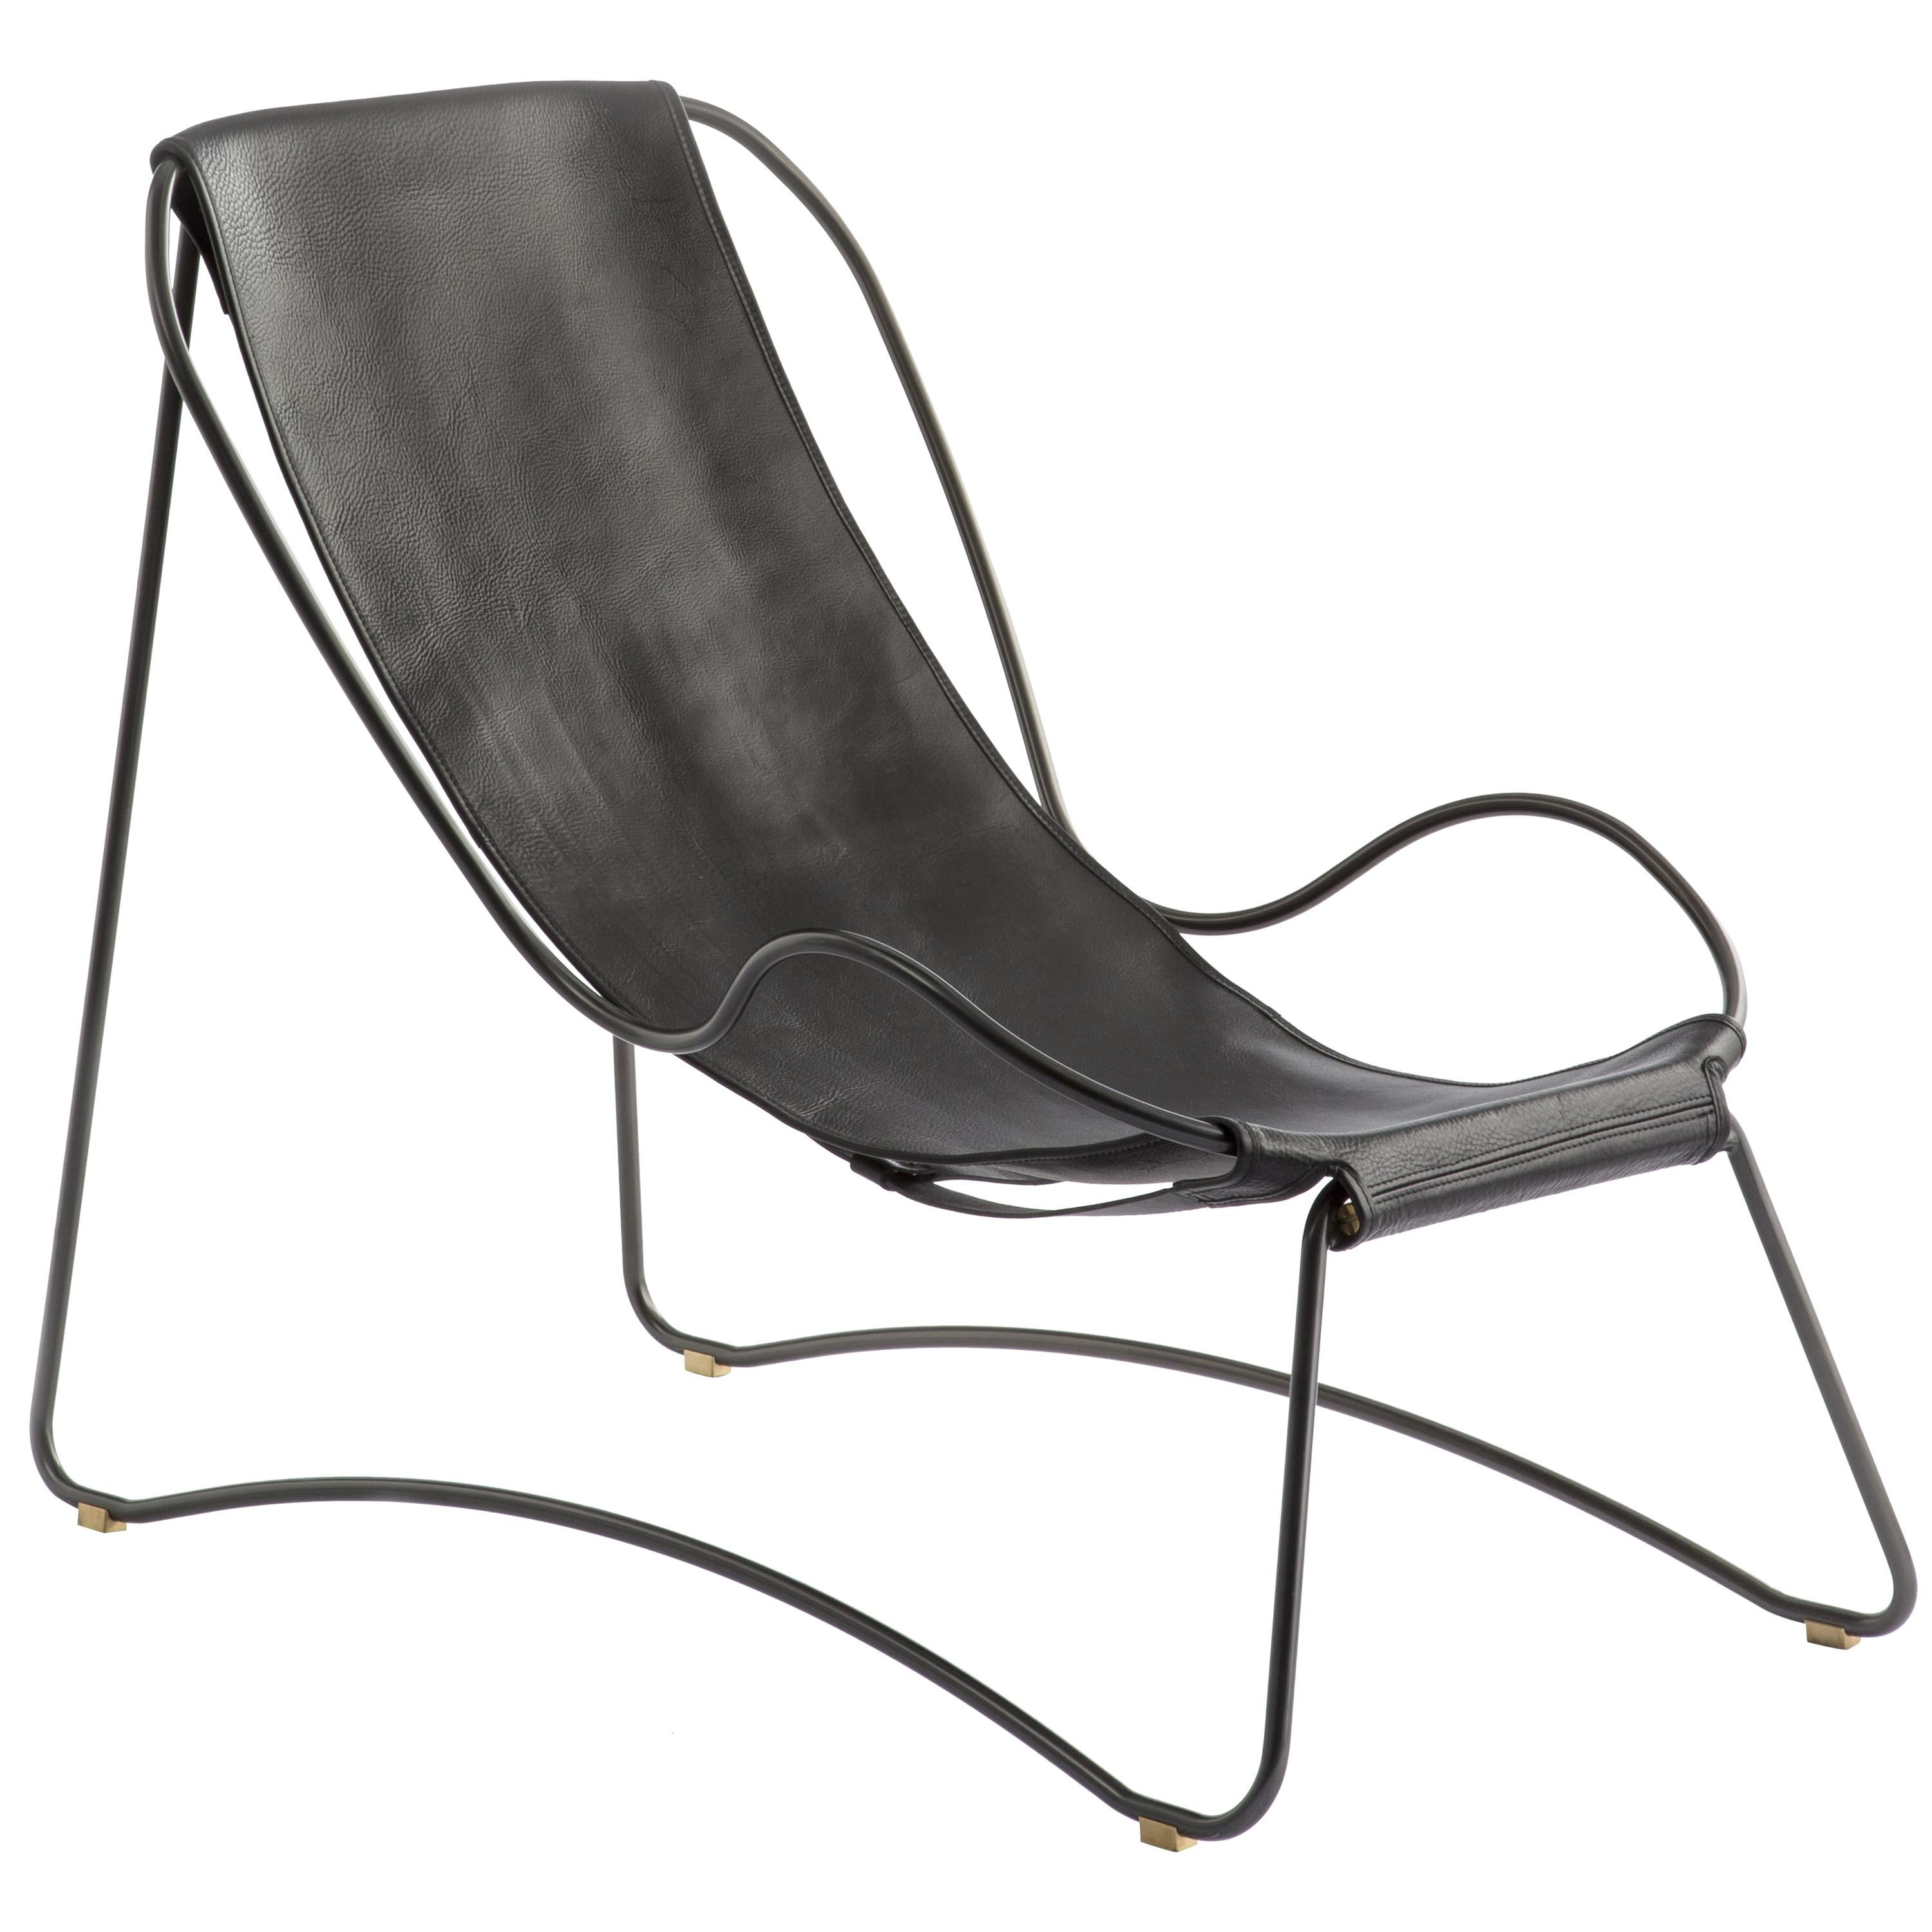 Chaise Longue, Black Steel and Black Saddle Leather, Modern Design